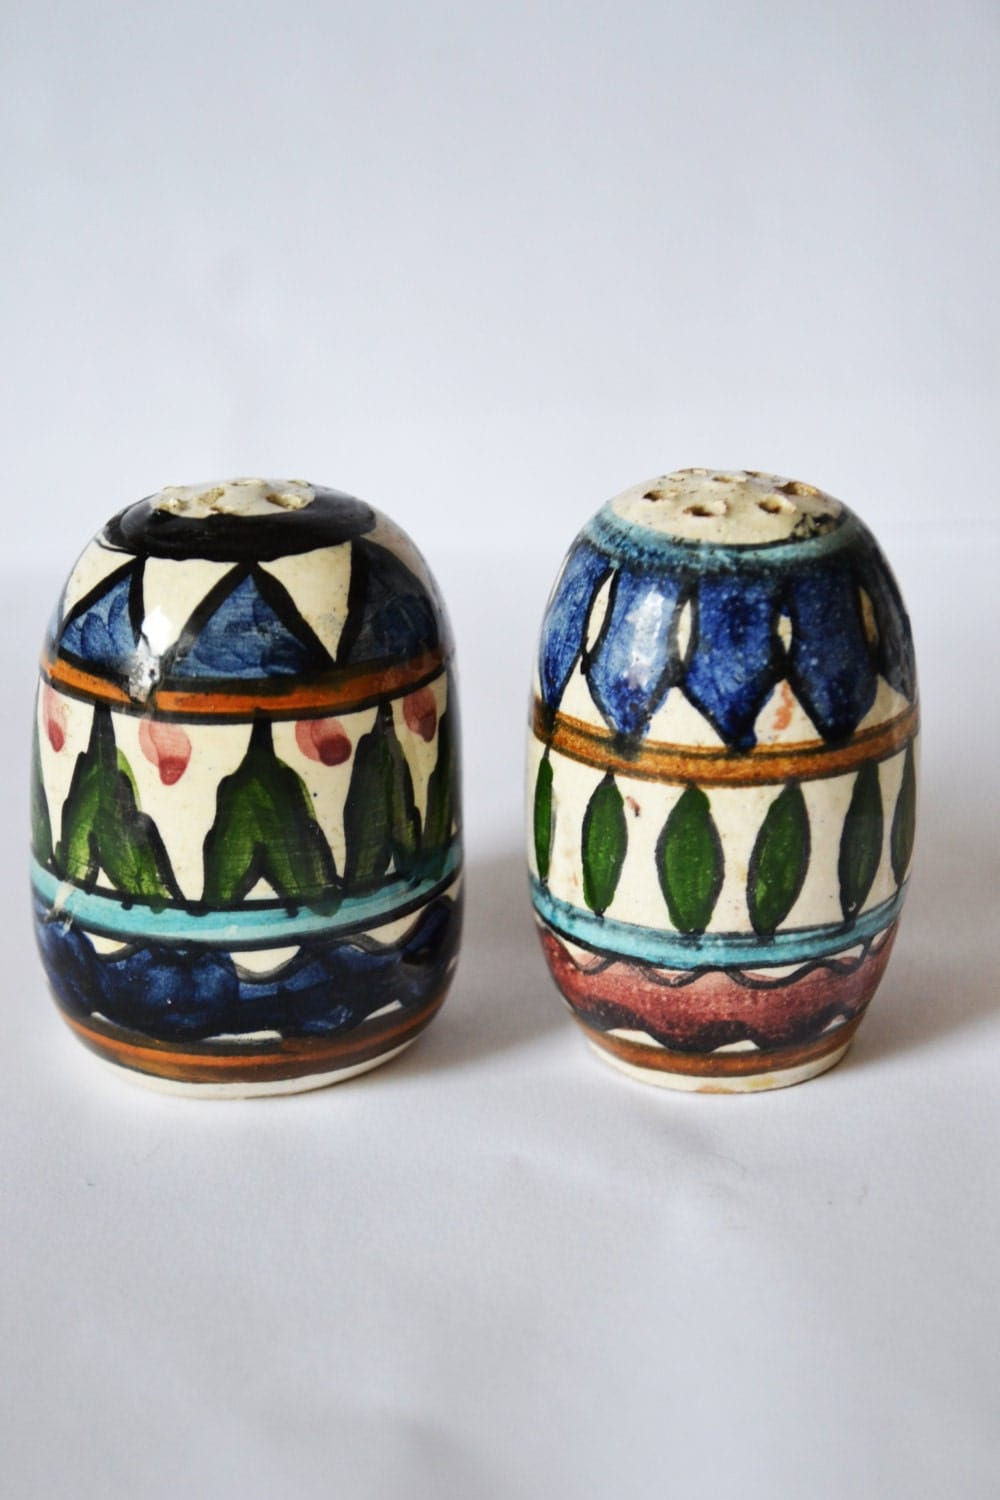 unique salt and pepper shakers unique salt and pepper shaker different sizes pair vintage b1 11313